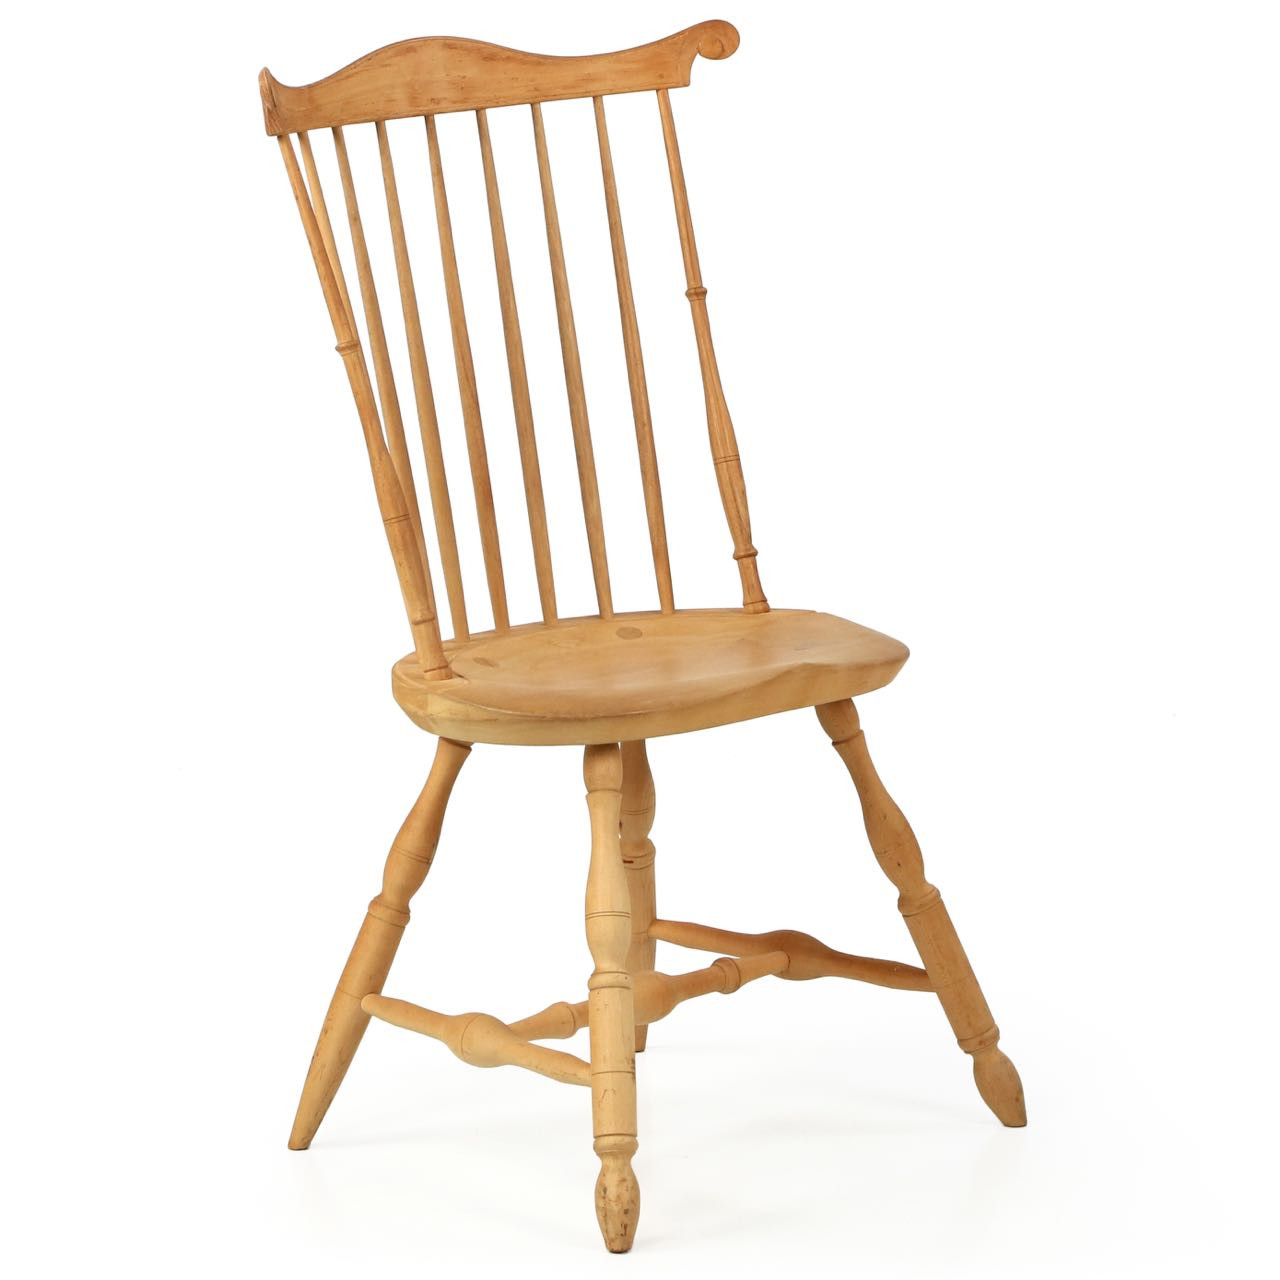 american lancaster style fanback windsor side chair 20th century